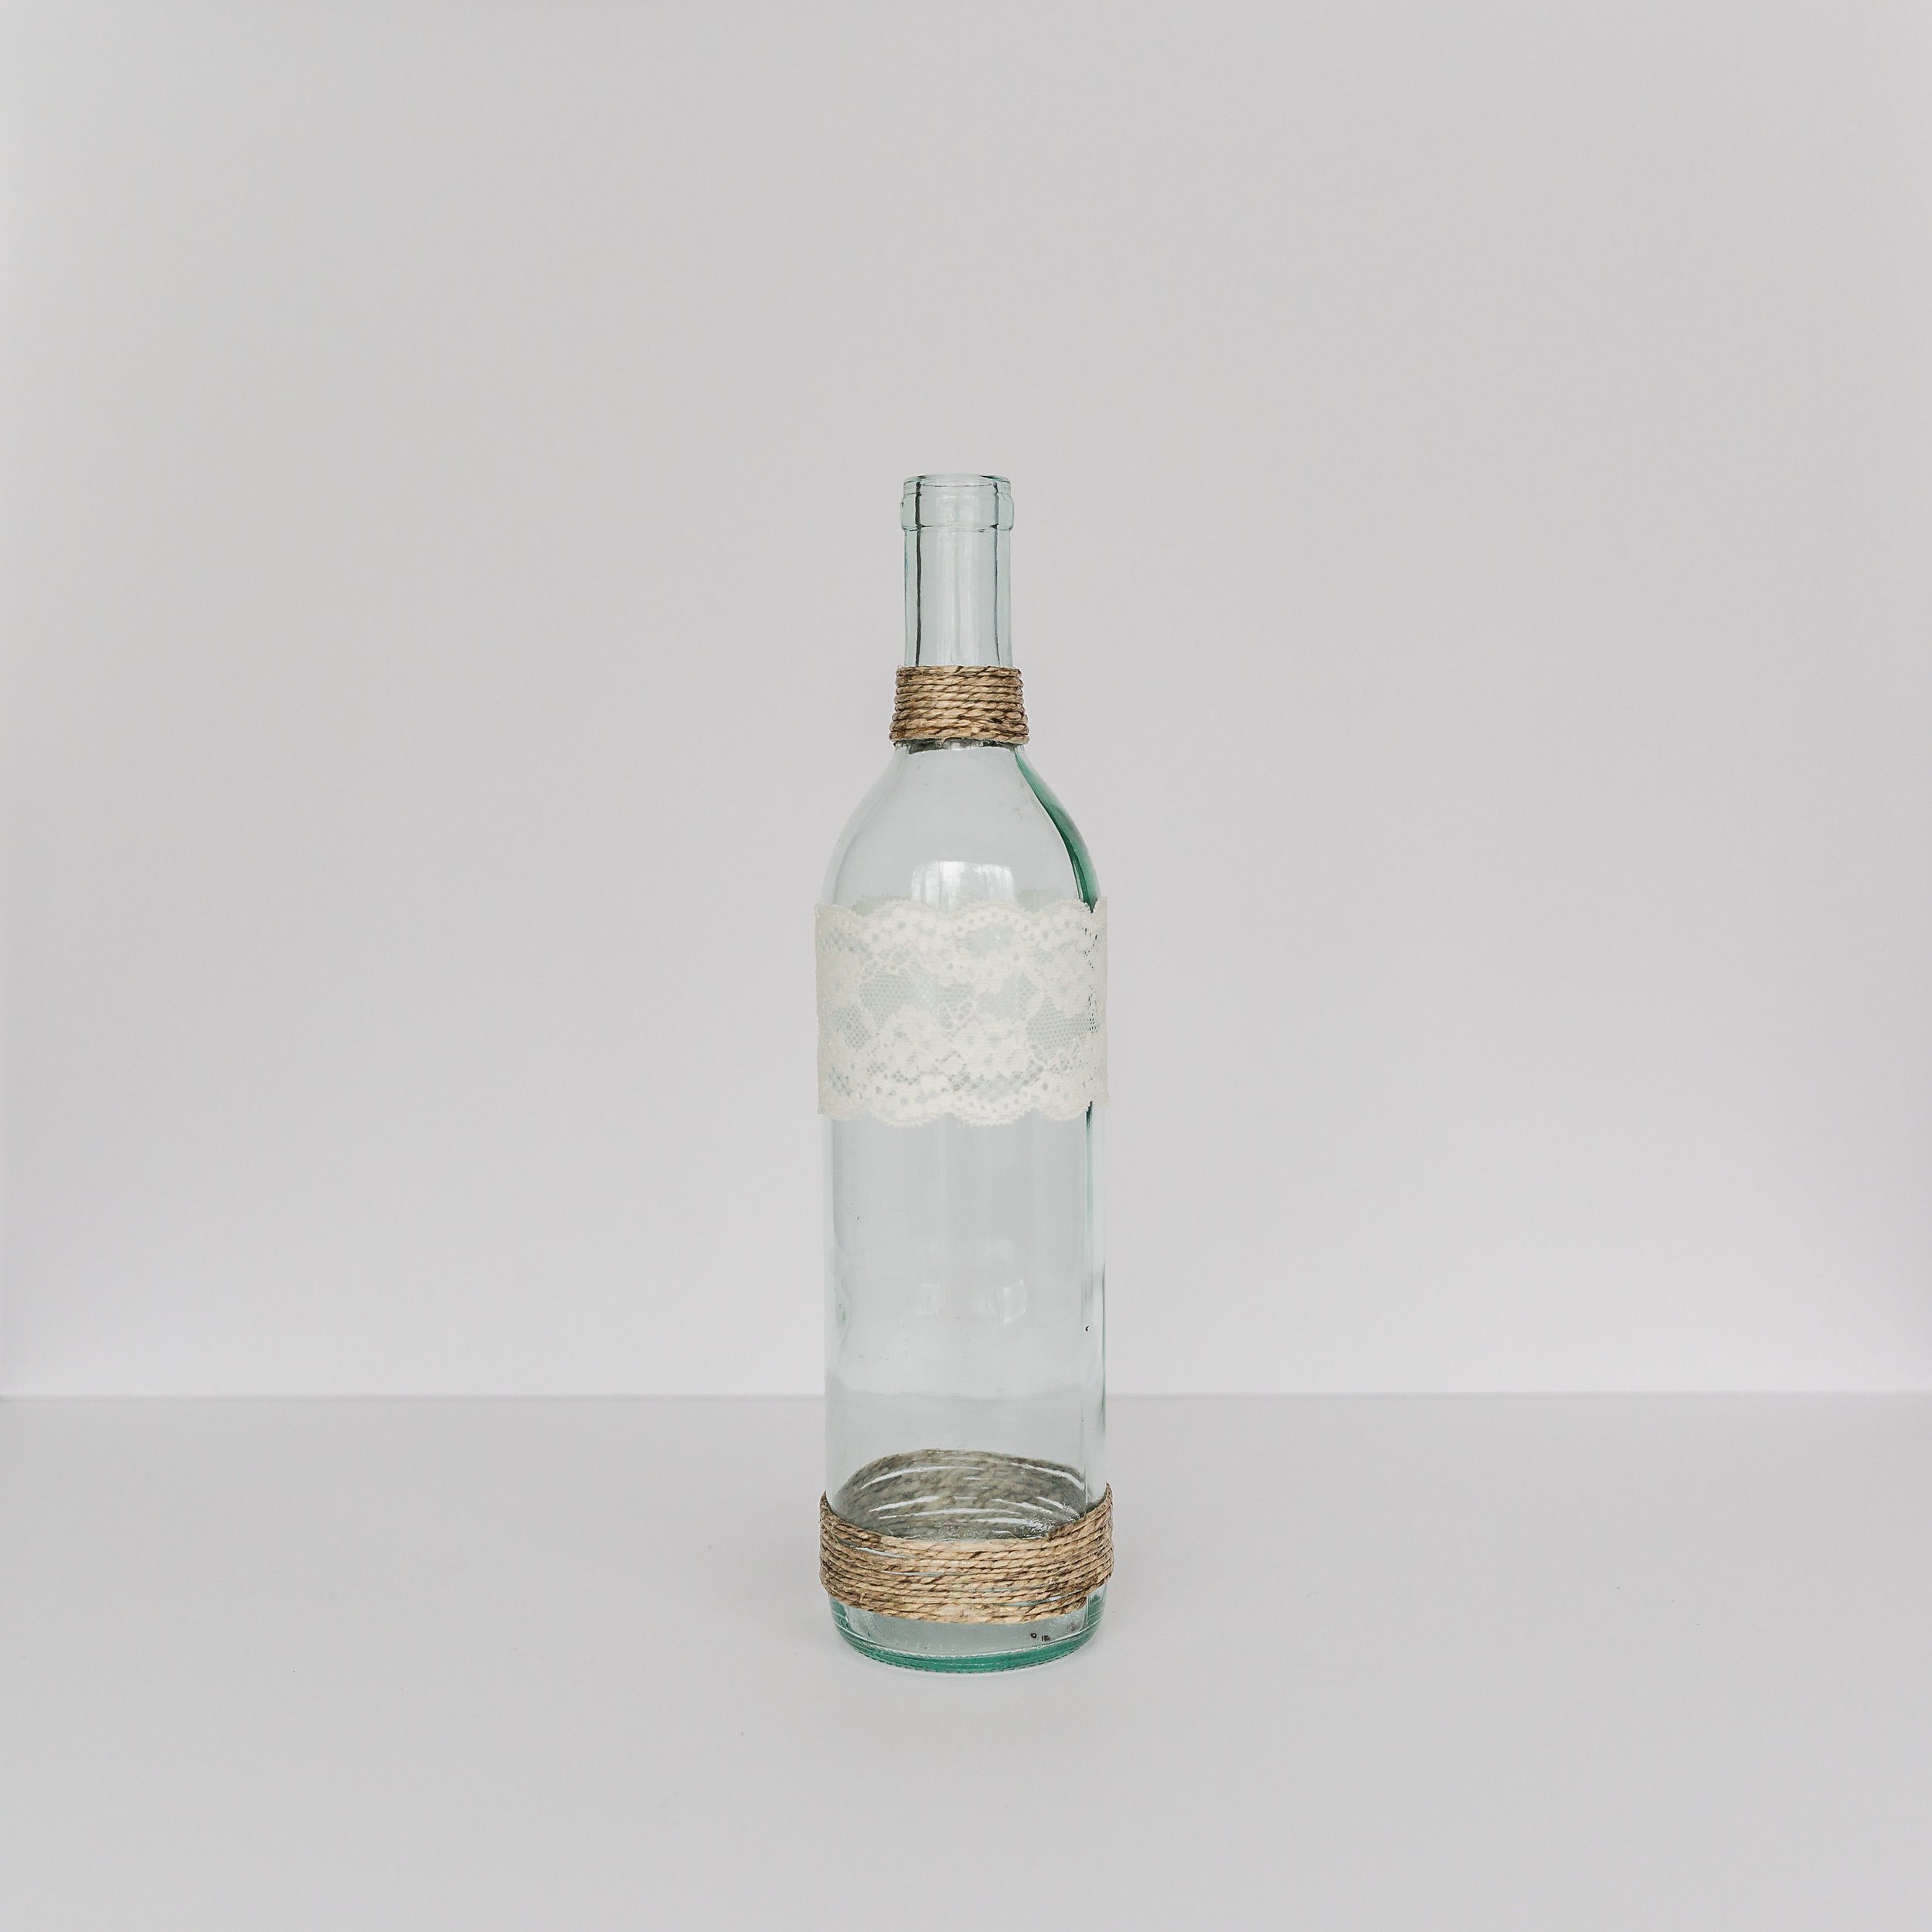 Glass Bottle Vase  height: average 13 inches >>>$0.75 each<<<